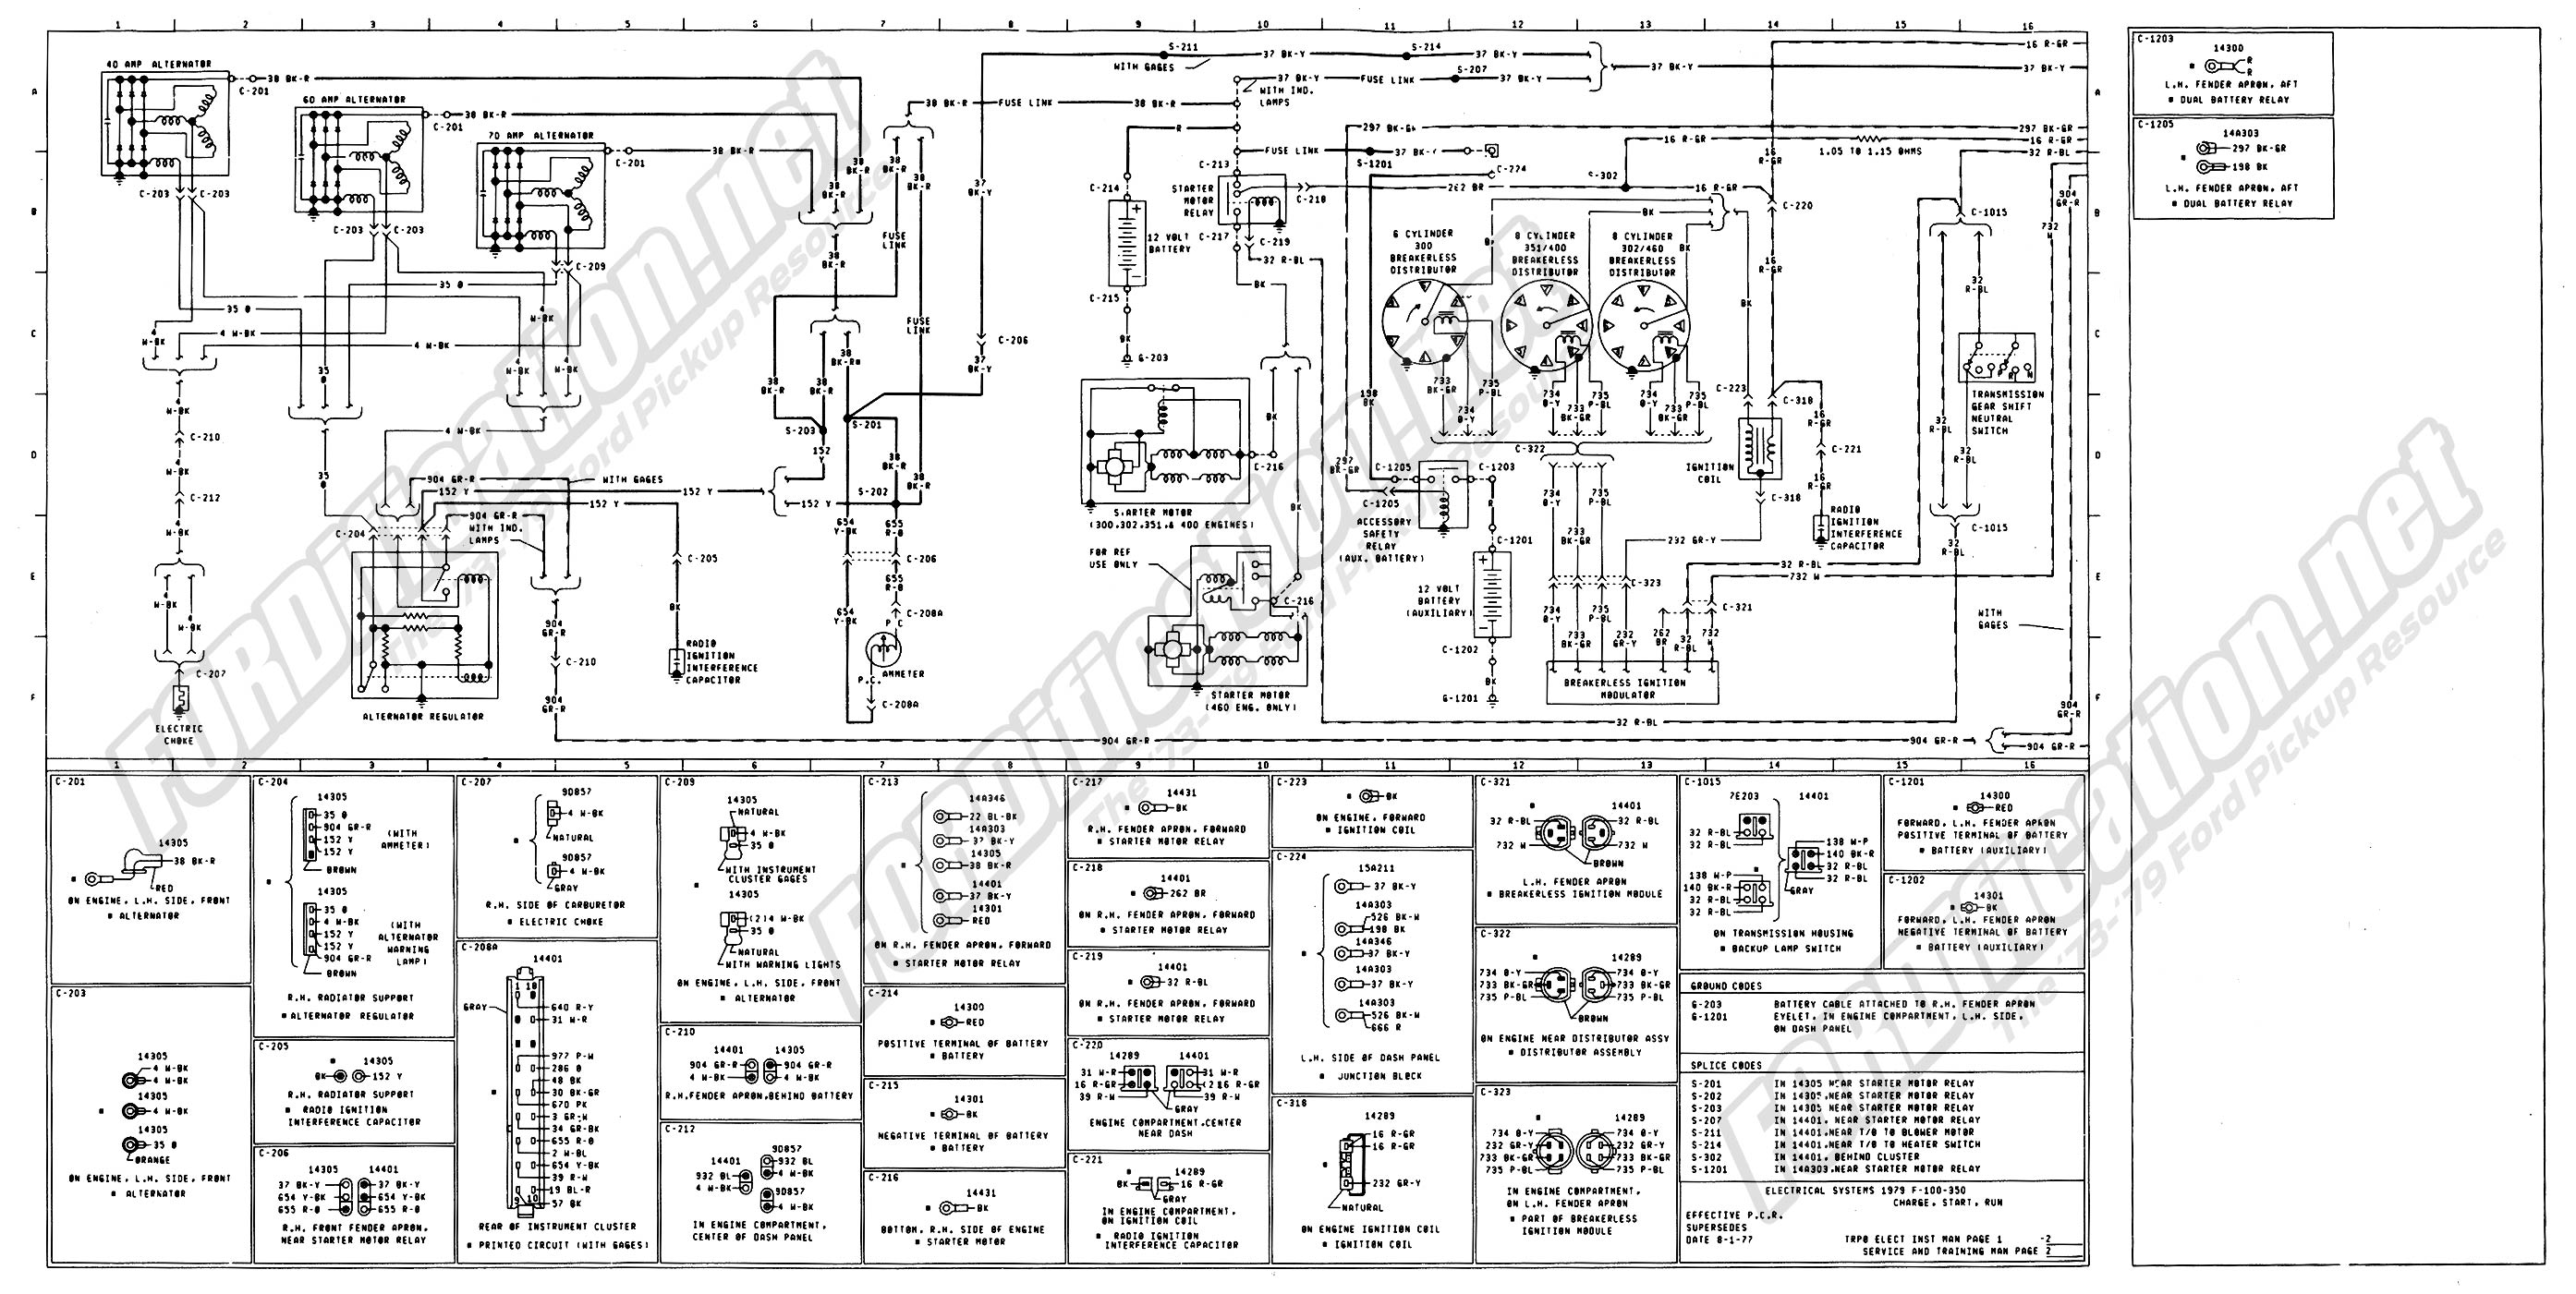 Ford Explorer Alternator Wiring Diagrams on ford tempo alternator wiring diagram, ford explorer diagram top view, ford f-150 alternator wiring diagram, ford ignition wiring diagram, ford regulator wiring diagram, ford 302 alternator wiring diagram, ford explorer alternator fusible link, ford tractor alternator tachometer connection, ford ranger alternator wiring, ford single wire alternator wiring diagram, ford starter solenoid wiring diagram, ford mustang alternator replacement, ford falcon alternator wiring diagram, ford truck alternator diagram, ford ranger alternator ground wire,